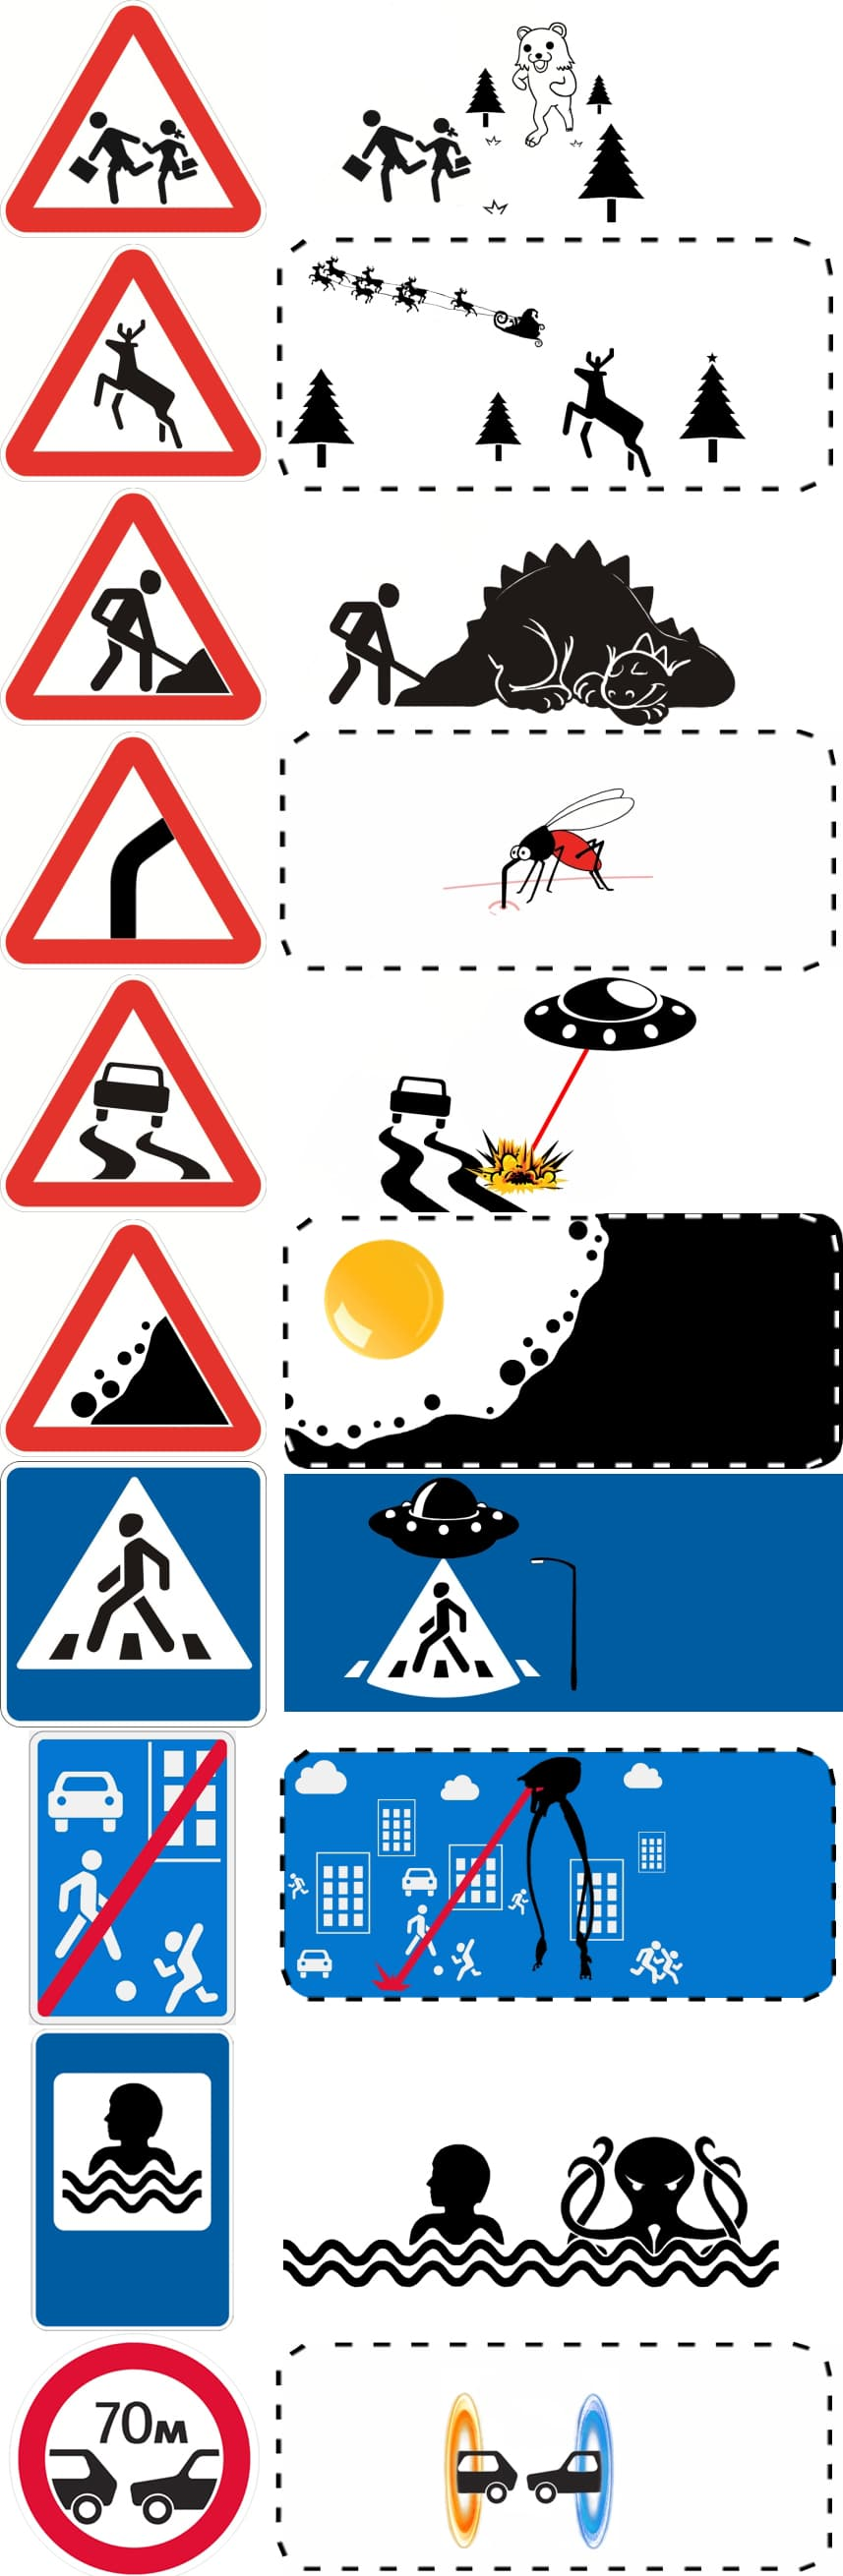 Road Signs Bigger Picture Design